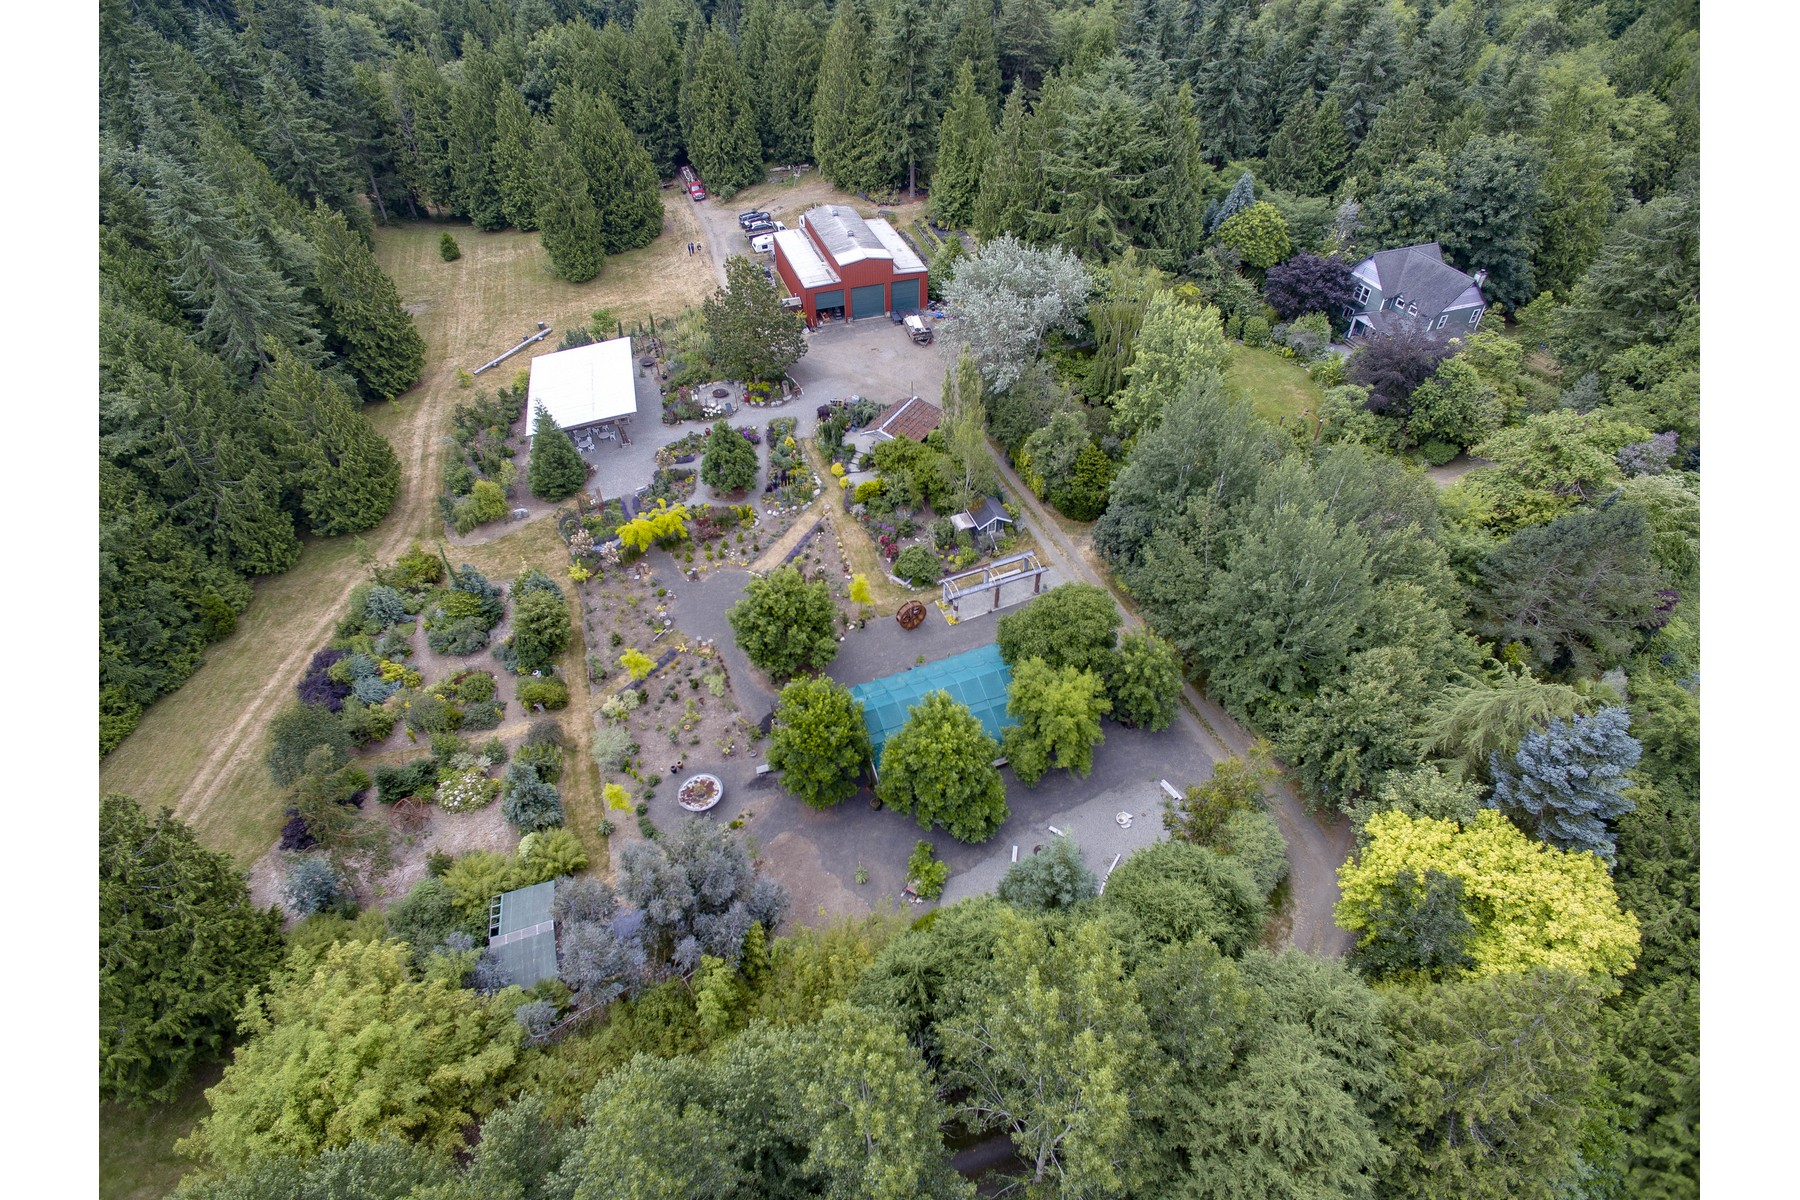 Single Family Home for Sale at Dragonfly Farm 34881 Hansville Rd NE Kingston, Washington 98346 United States